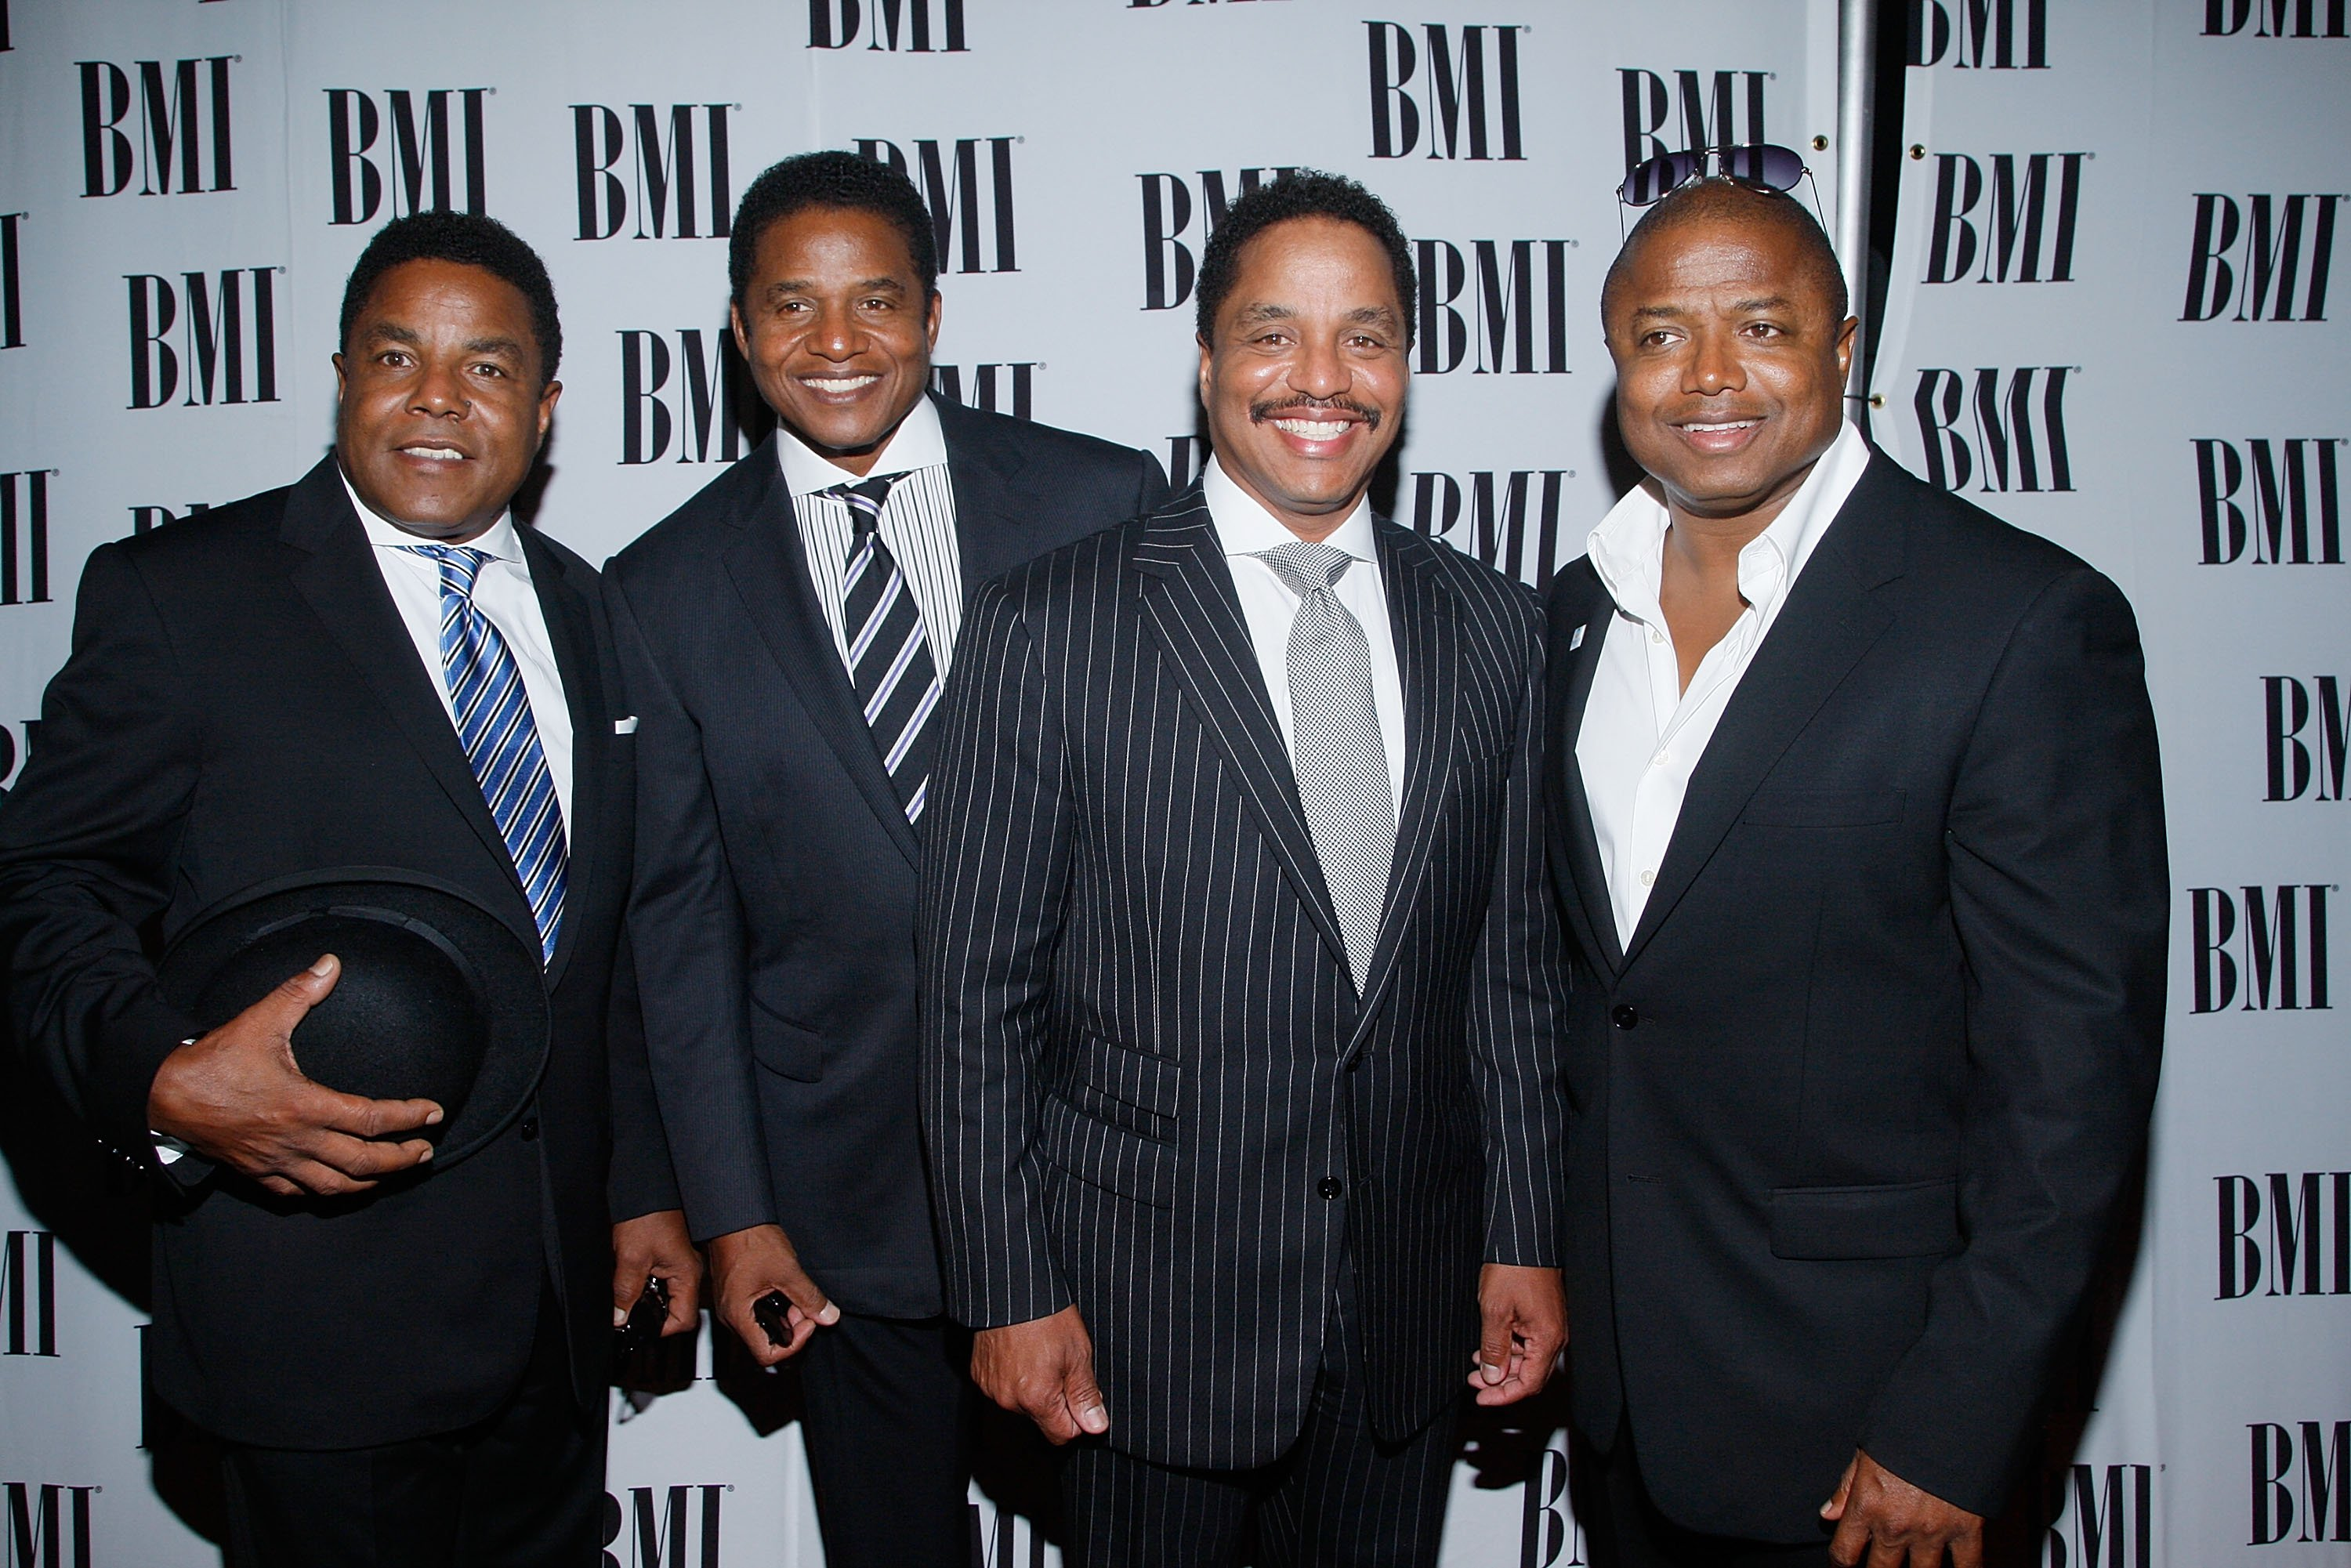 Brothers Tito, Jackie, Marlon and Randy Jackson arrive at the 8th Annual BMI Urban Awards at the Wishire Theatre on September 4, 2008, in Los Angeles, California. | Source: Getty Images.